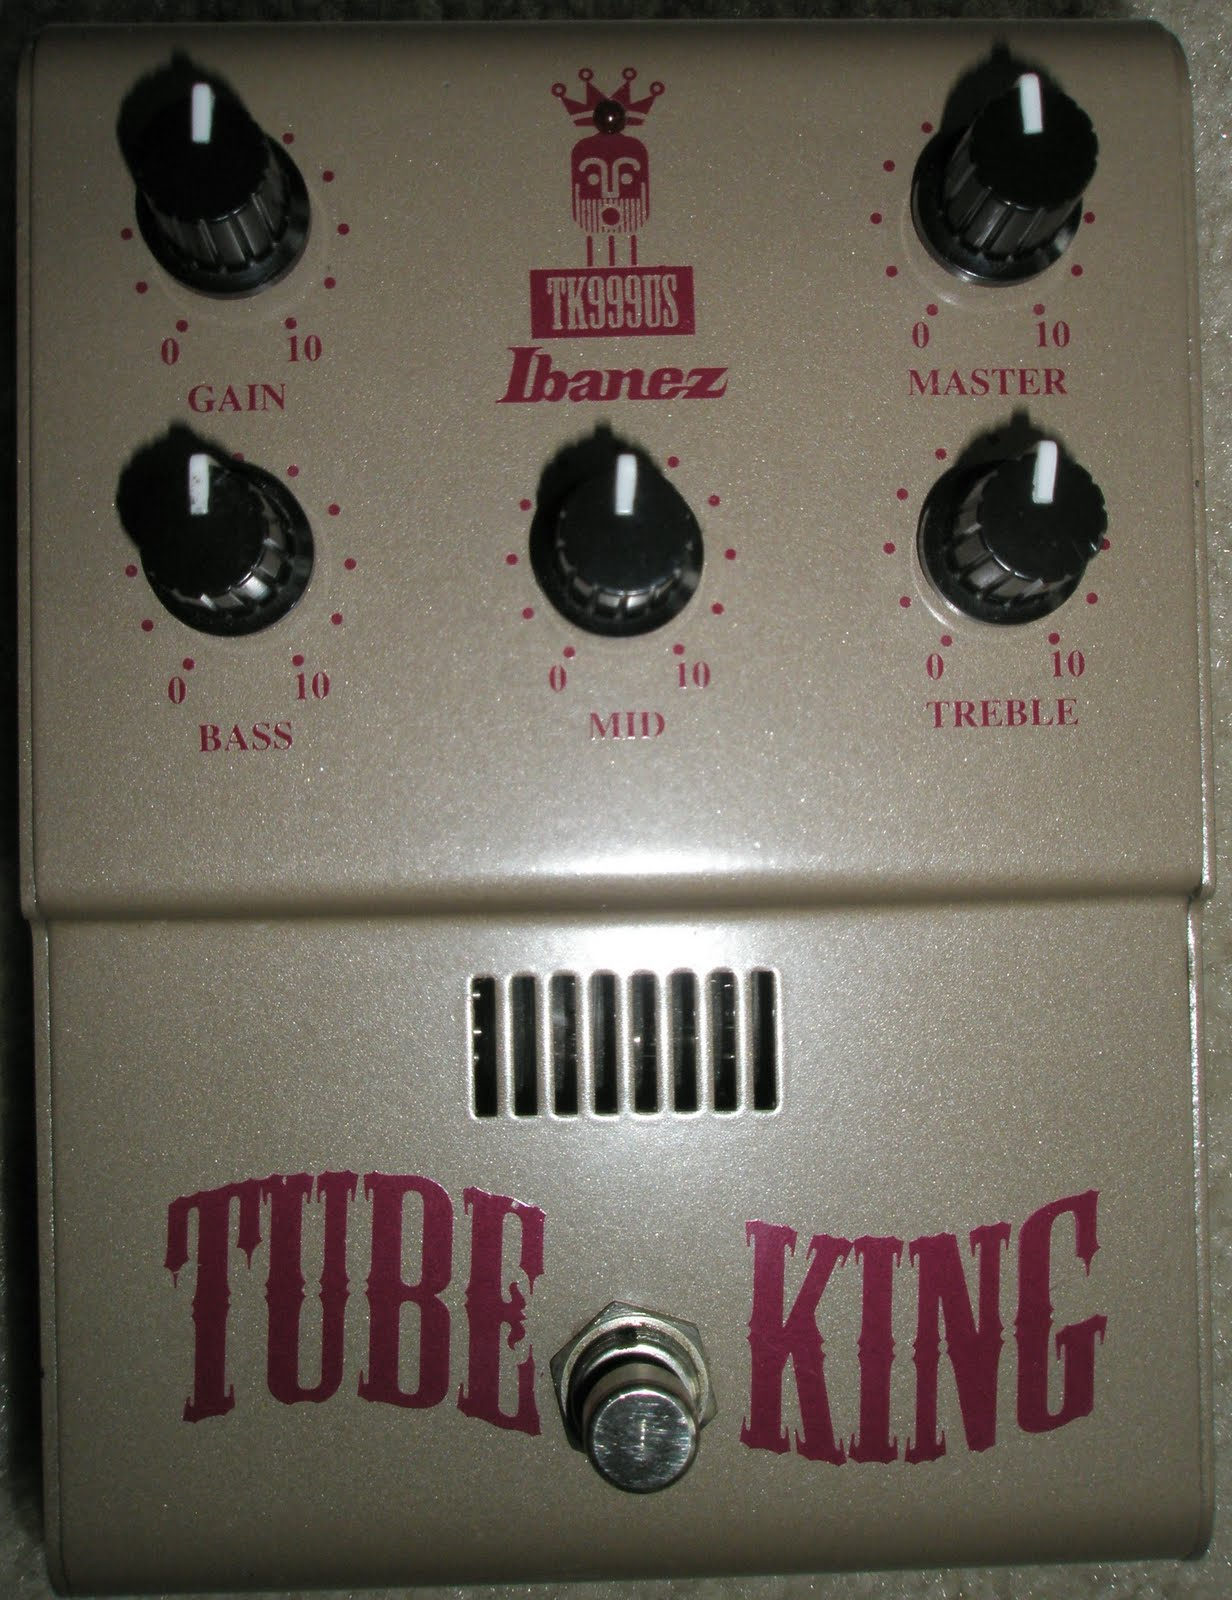 Stompbox Blog Ibanez Tk999us Tube King Fender Deluxe Reverb Wiring Diagram